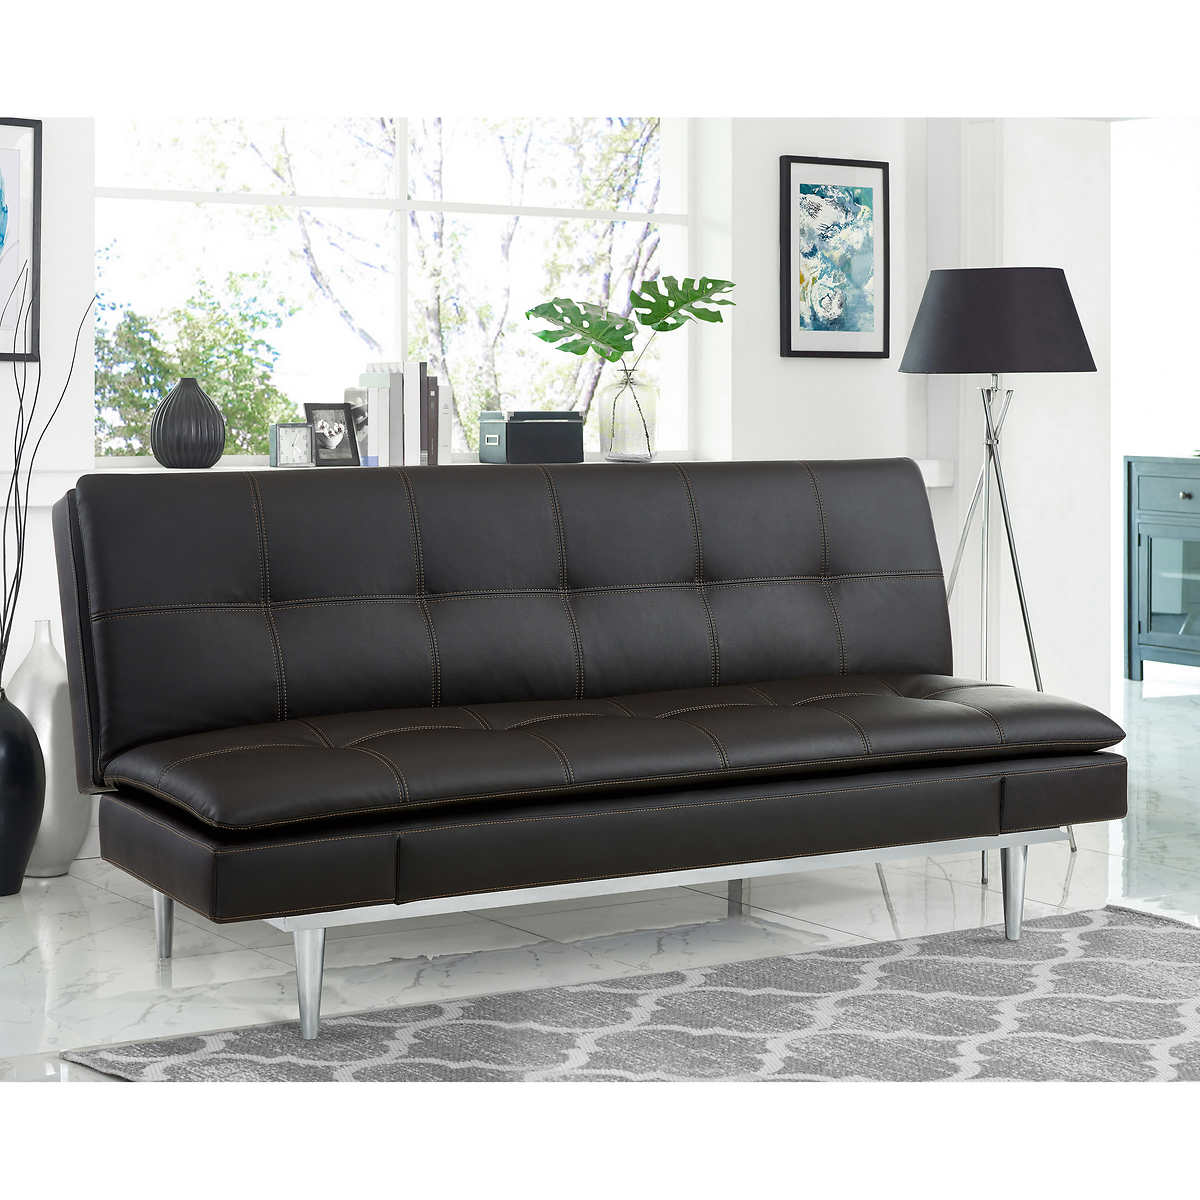 Russel Beautyrest Bonded Leather Euro Lounger